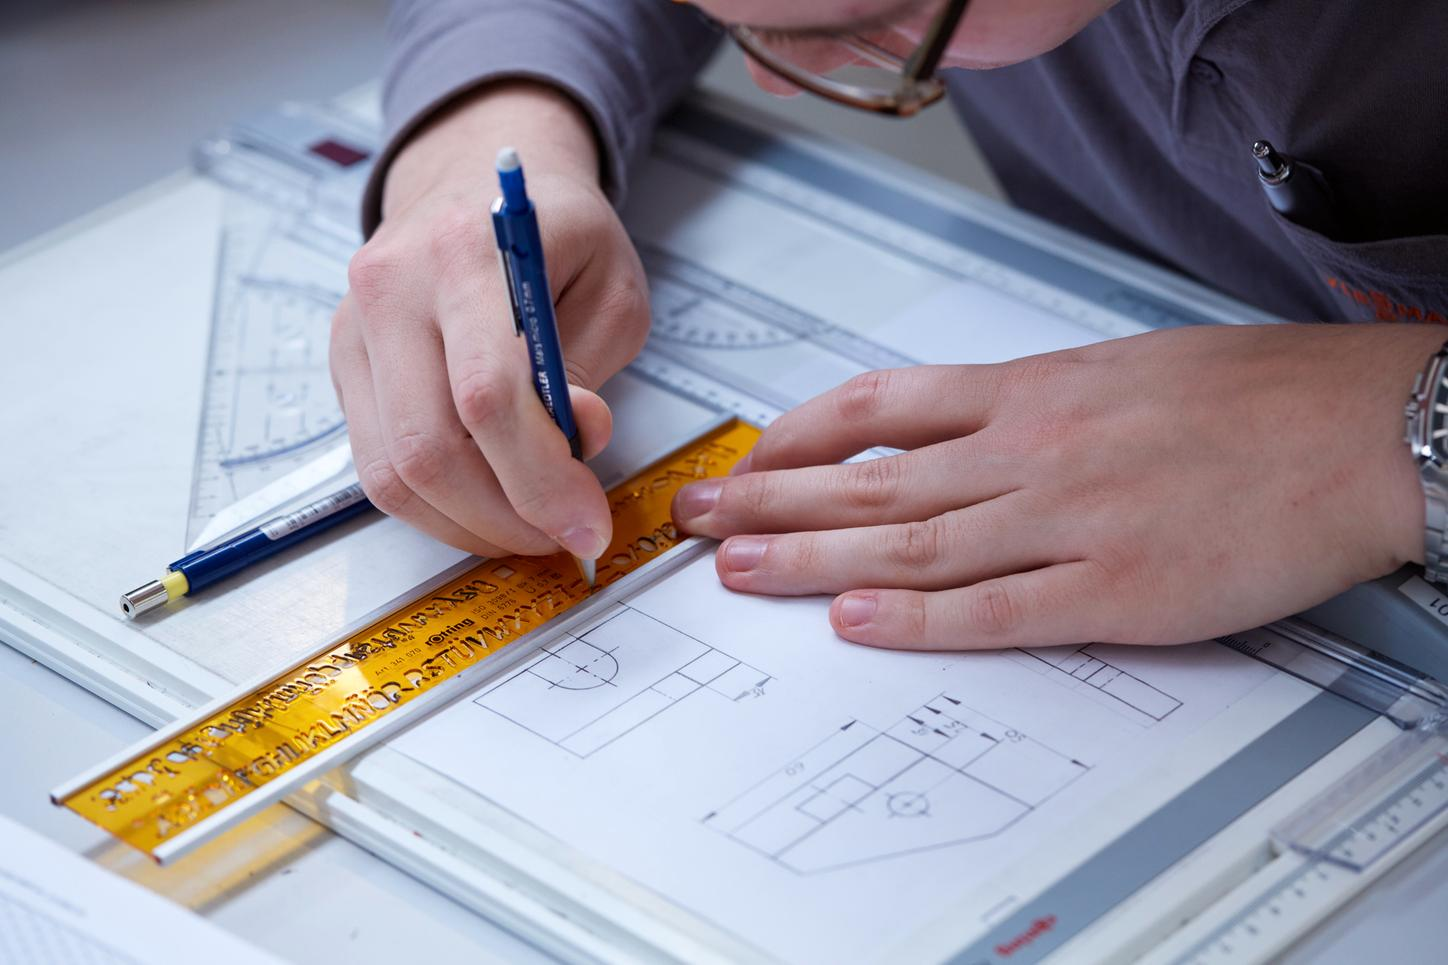 The image shows an employee creating a technical drawing.